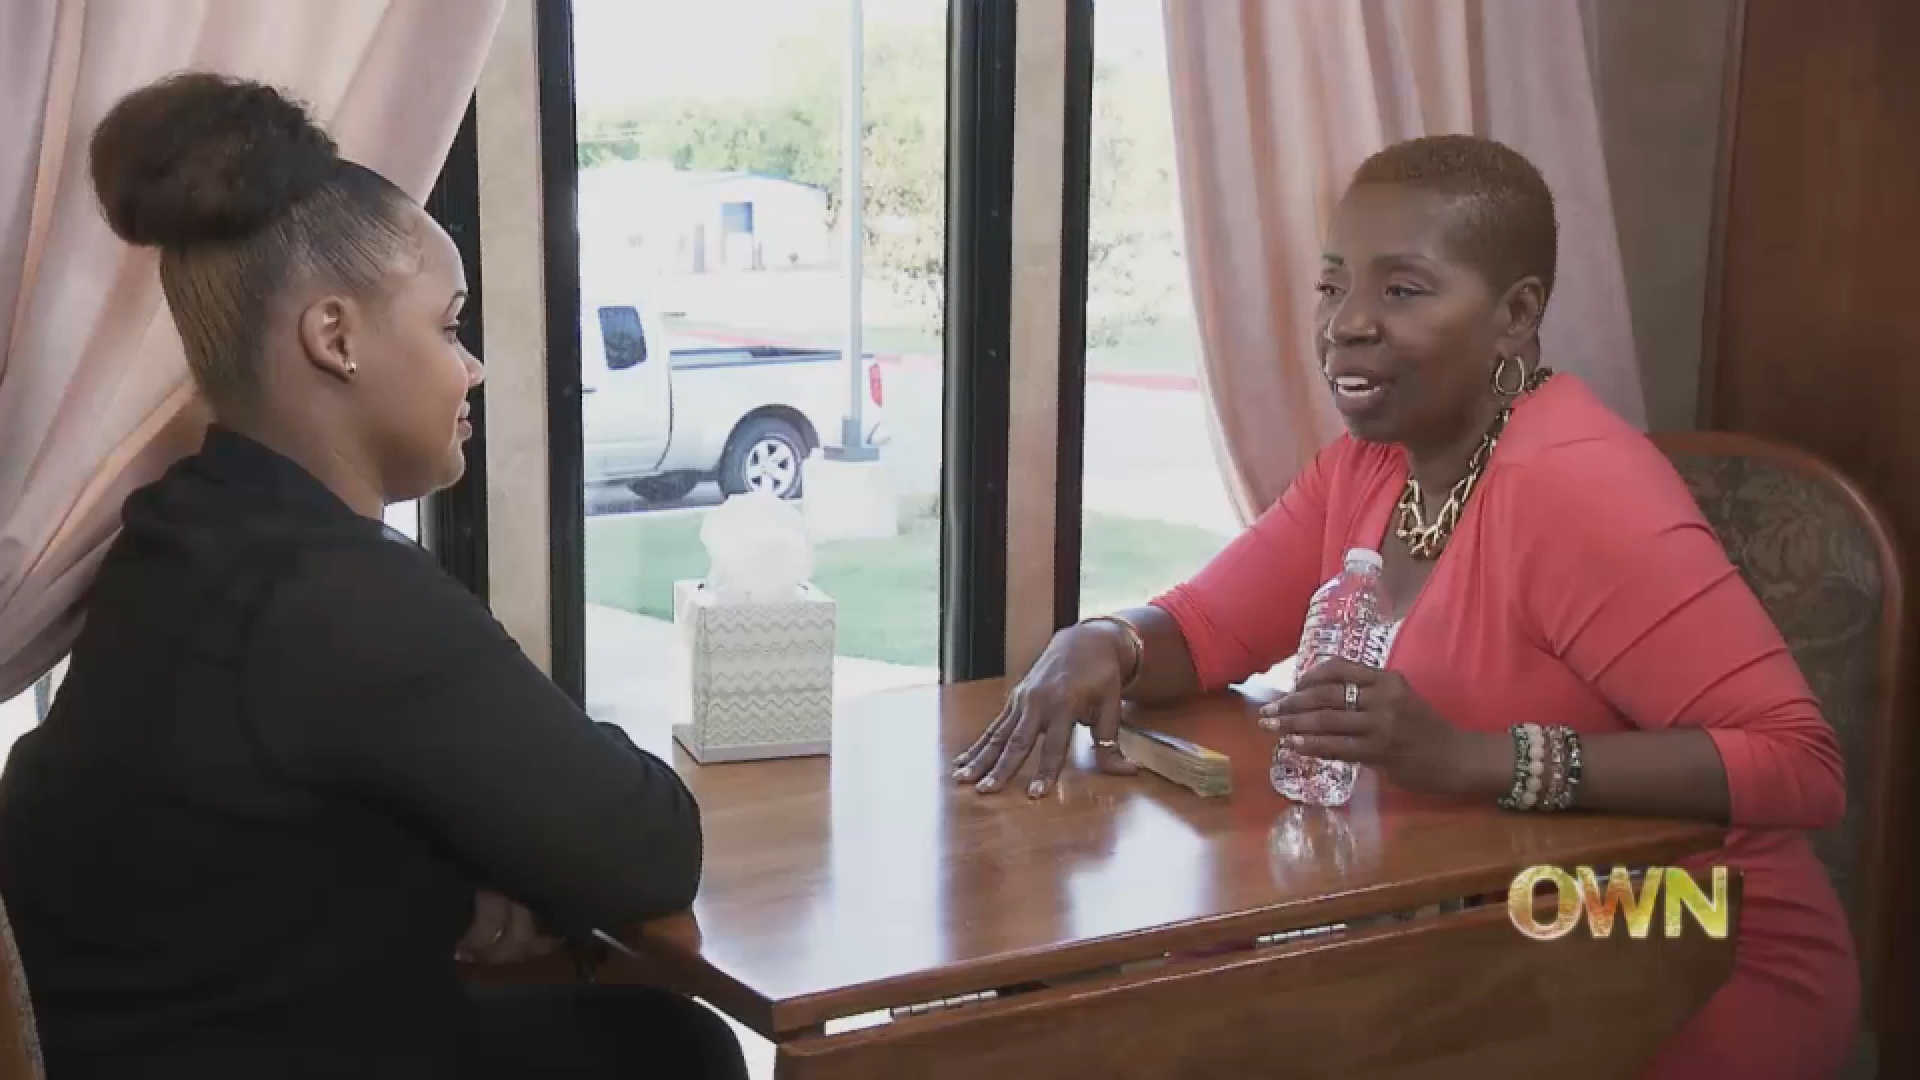 Is iyanla vanzant married